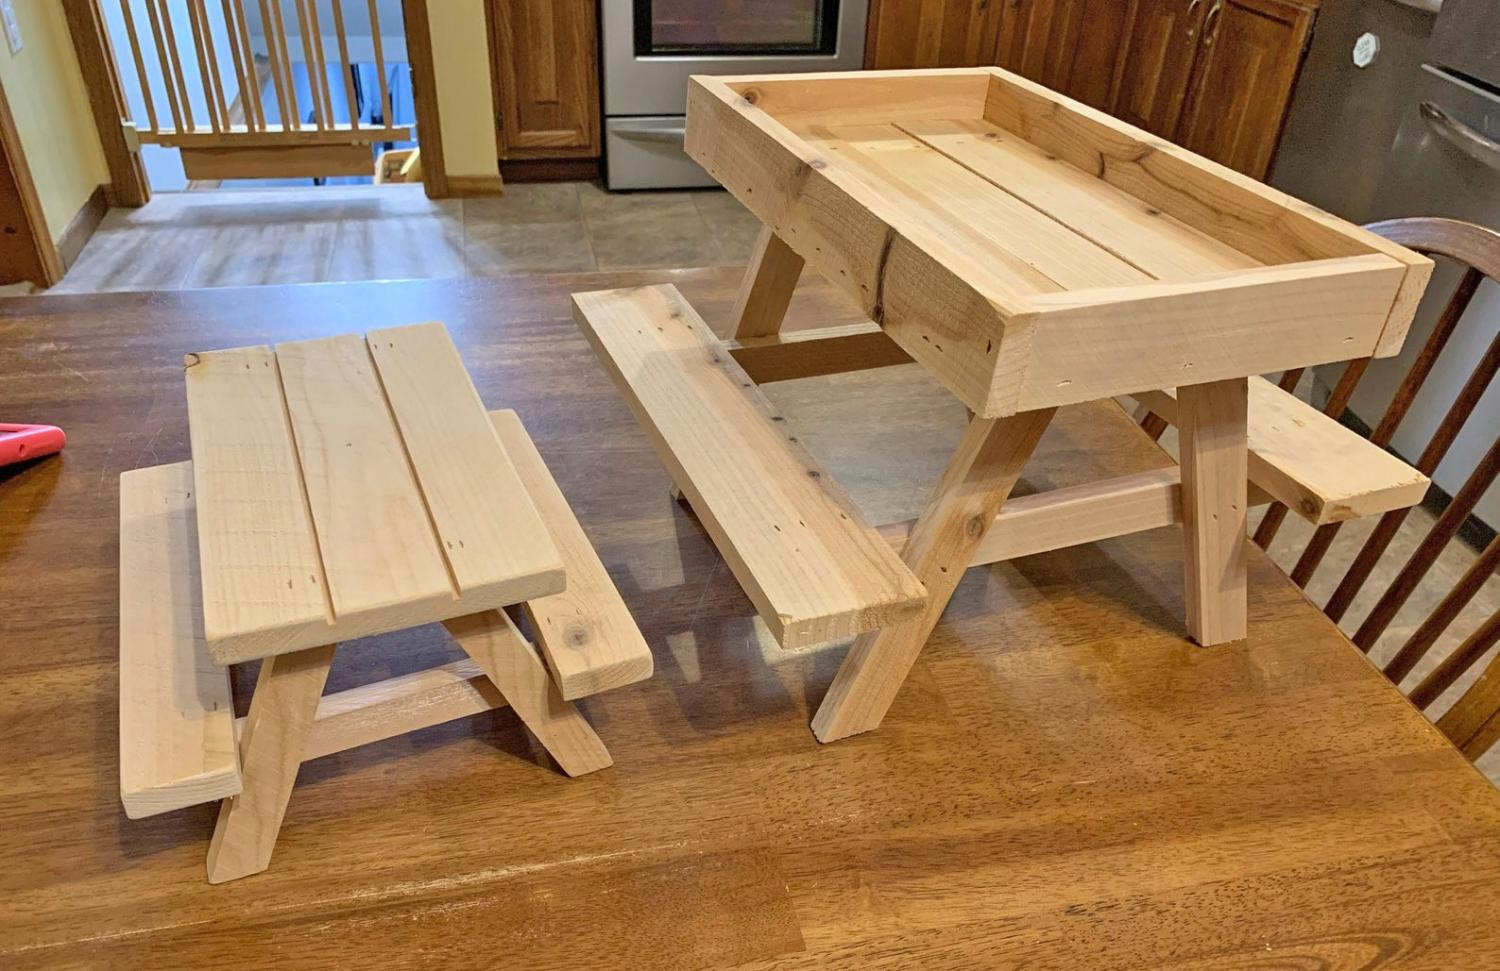 Mini Picnic Table For Chickens - Chicknic table - chicken picnic table